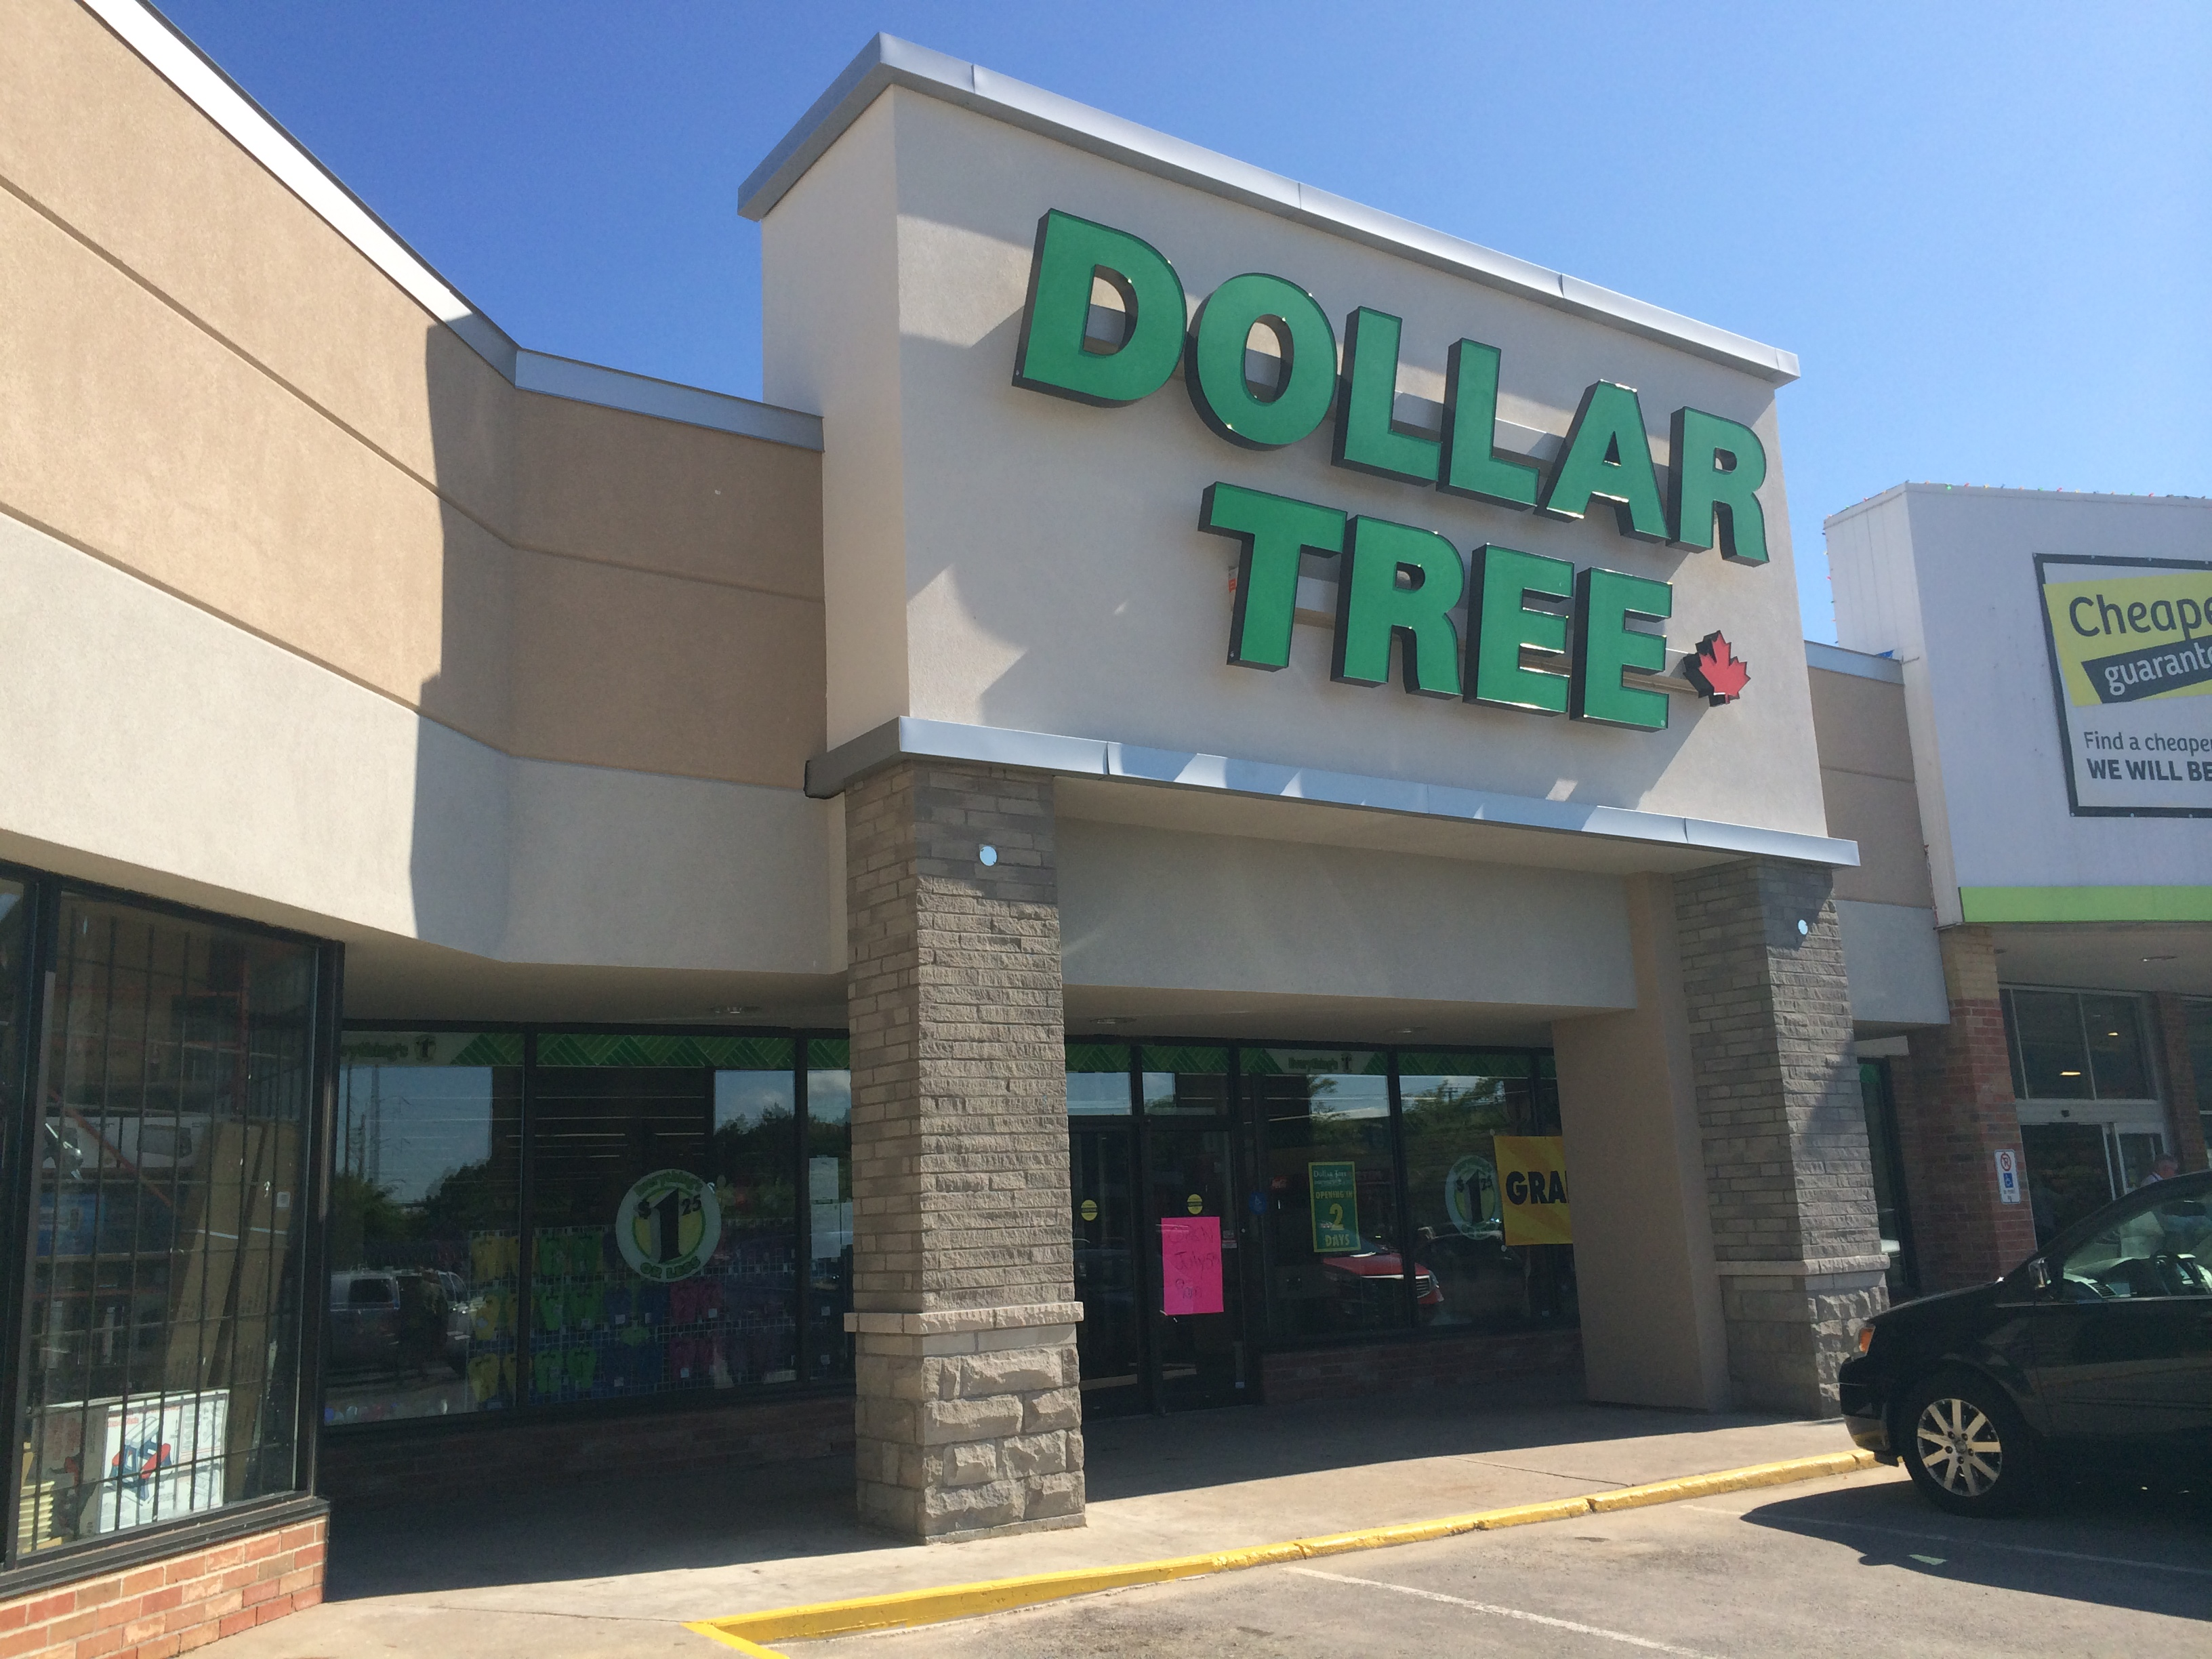 Briarfield - Dollar Tree